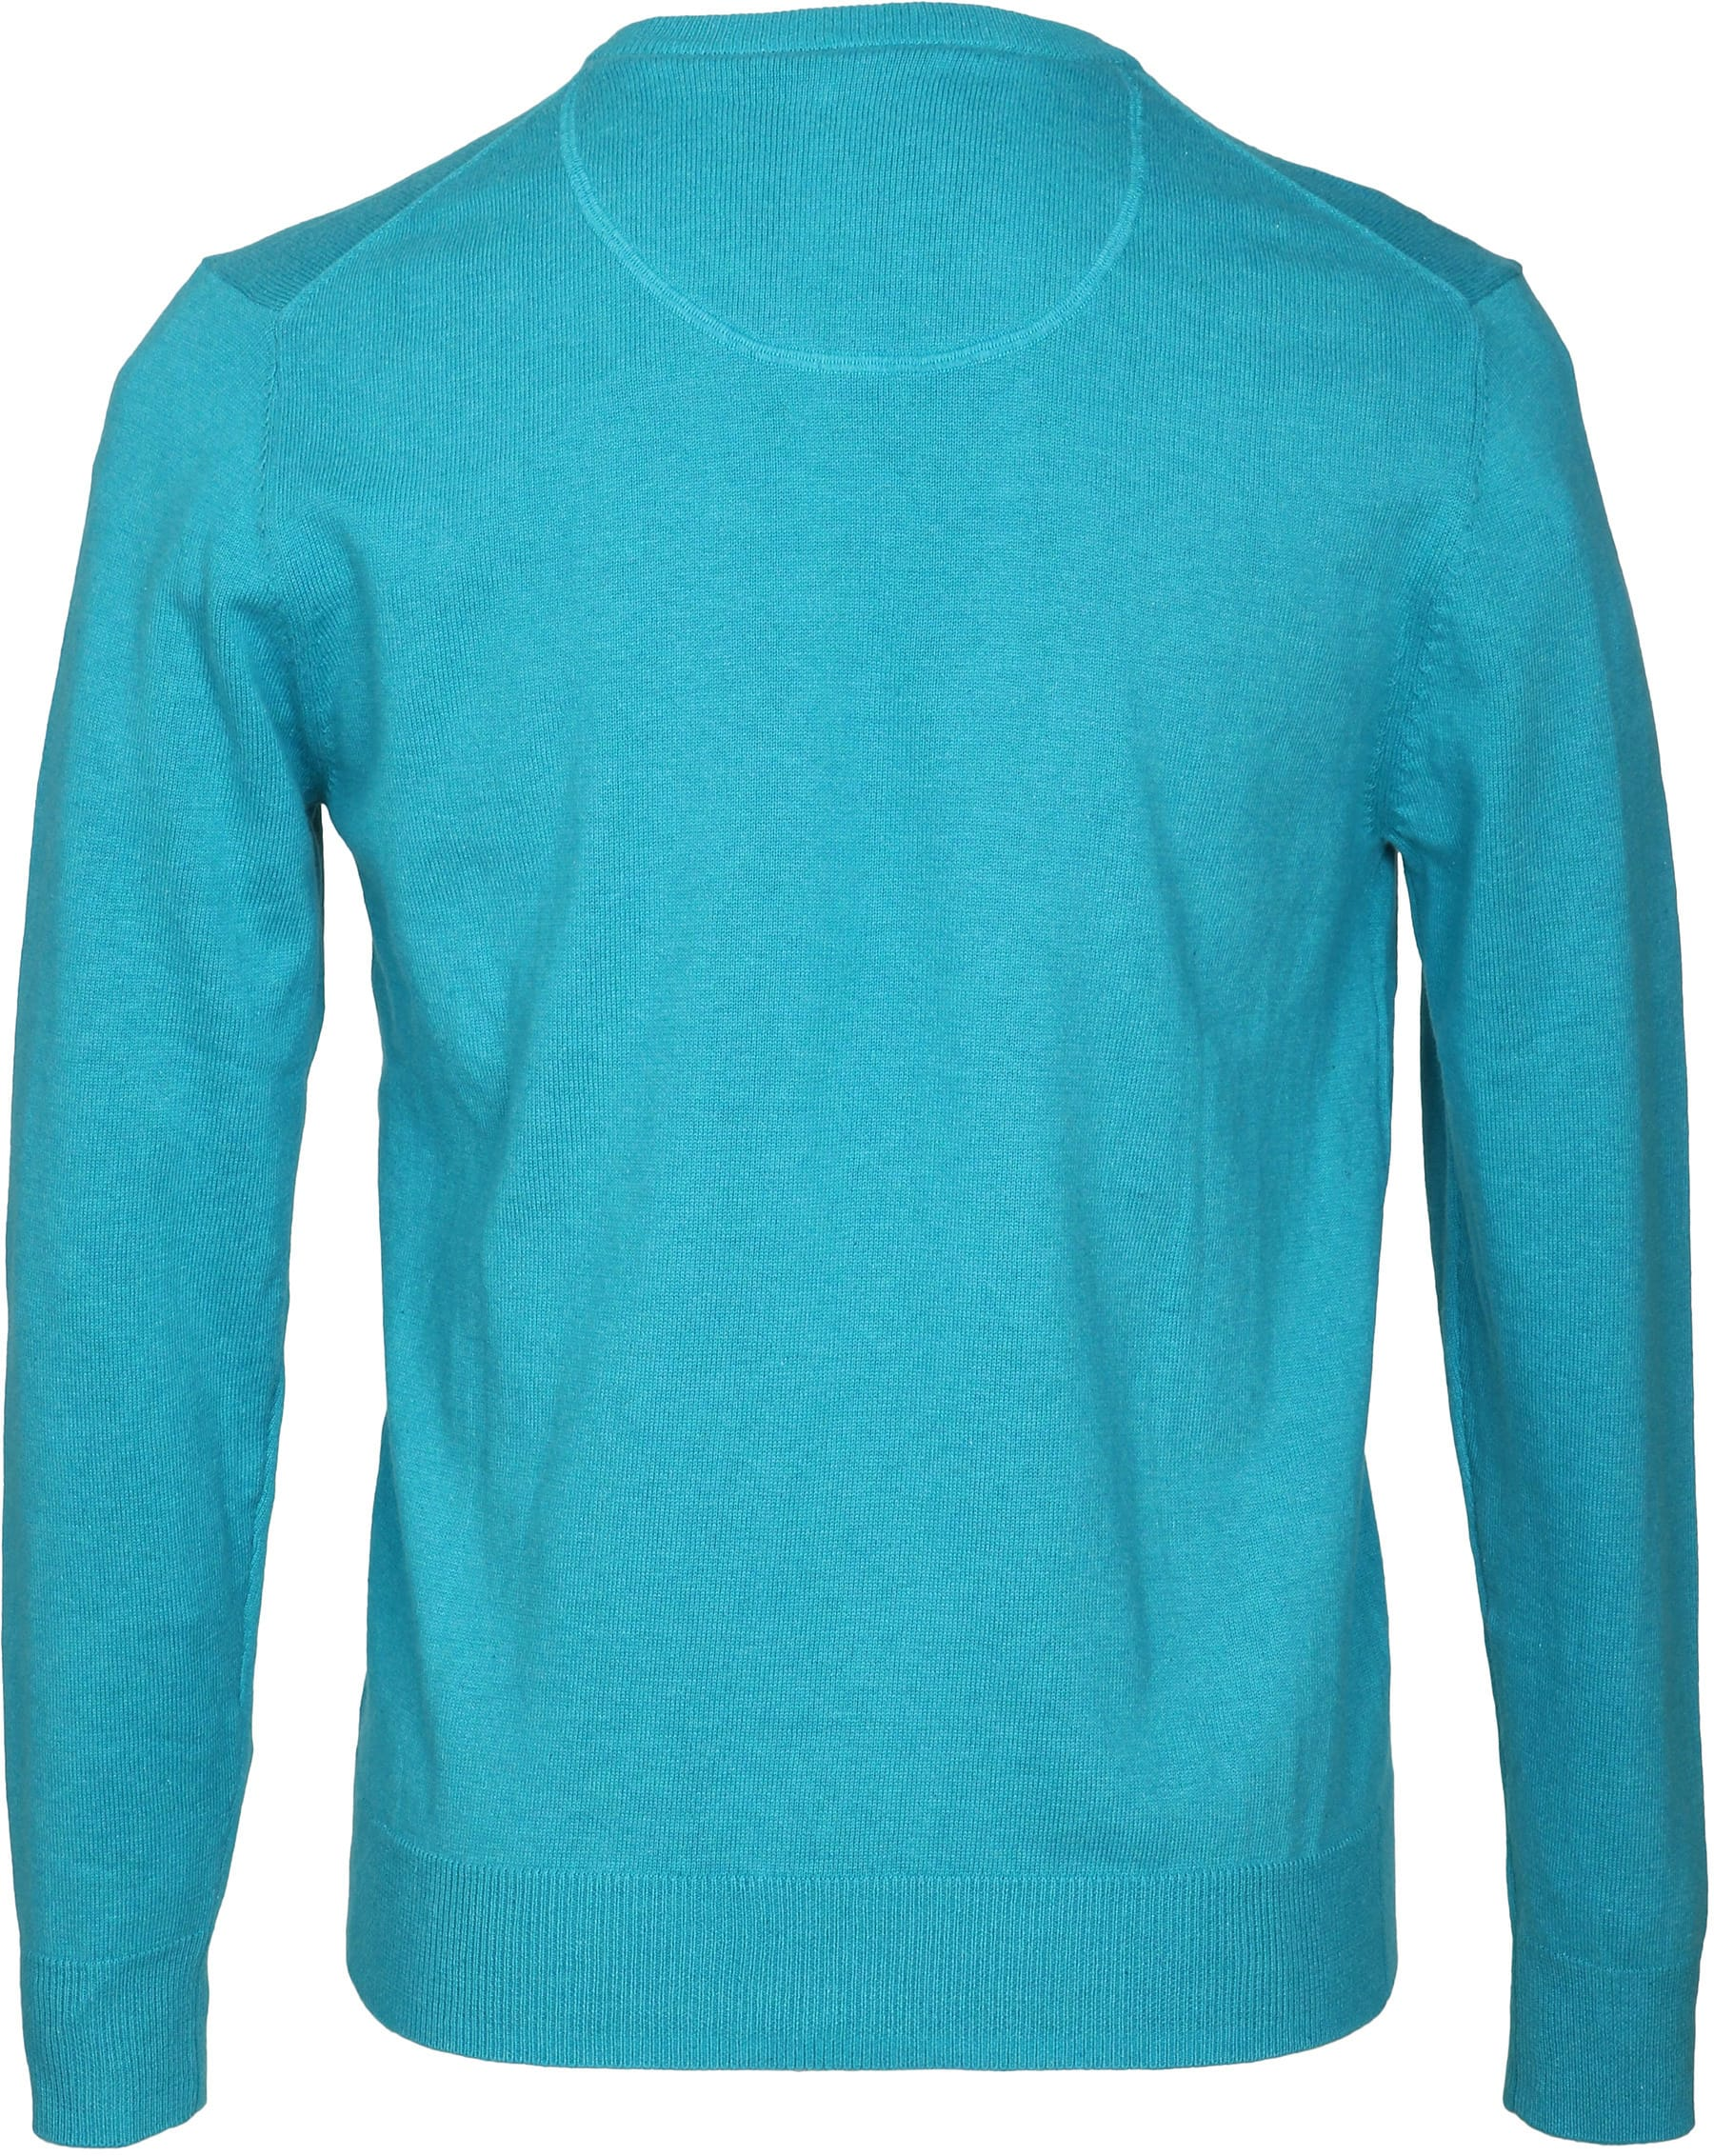 Suitable Pullover Vini Aqua foto 2